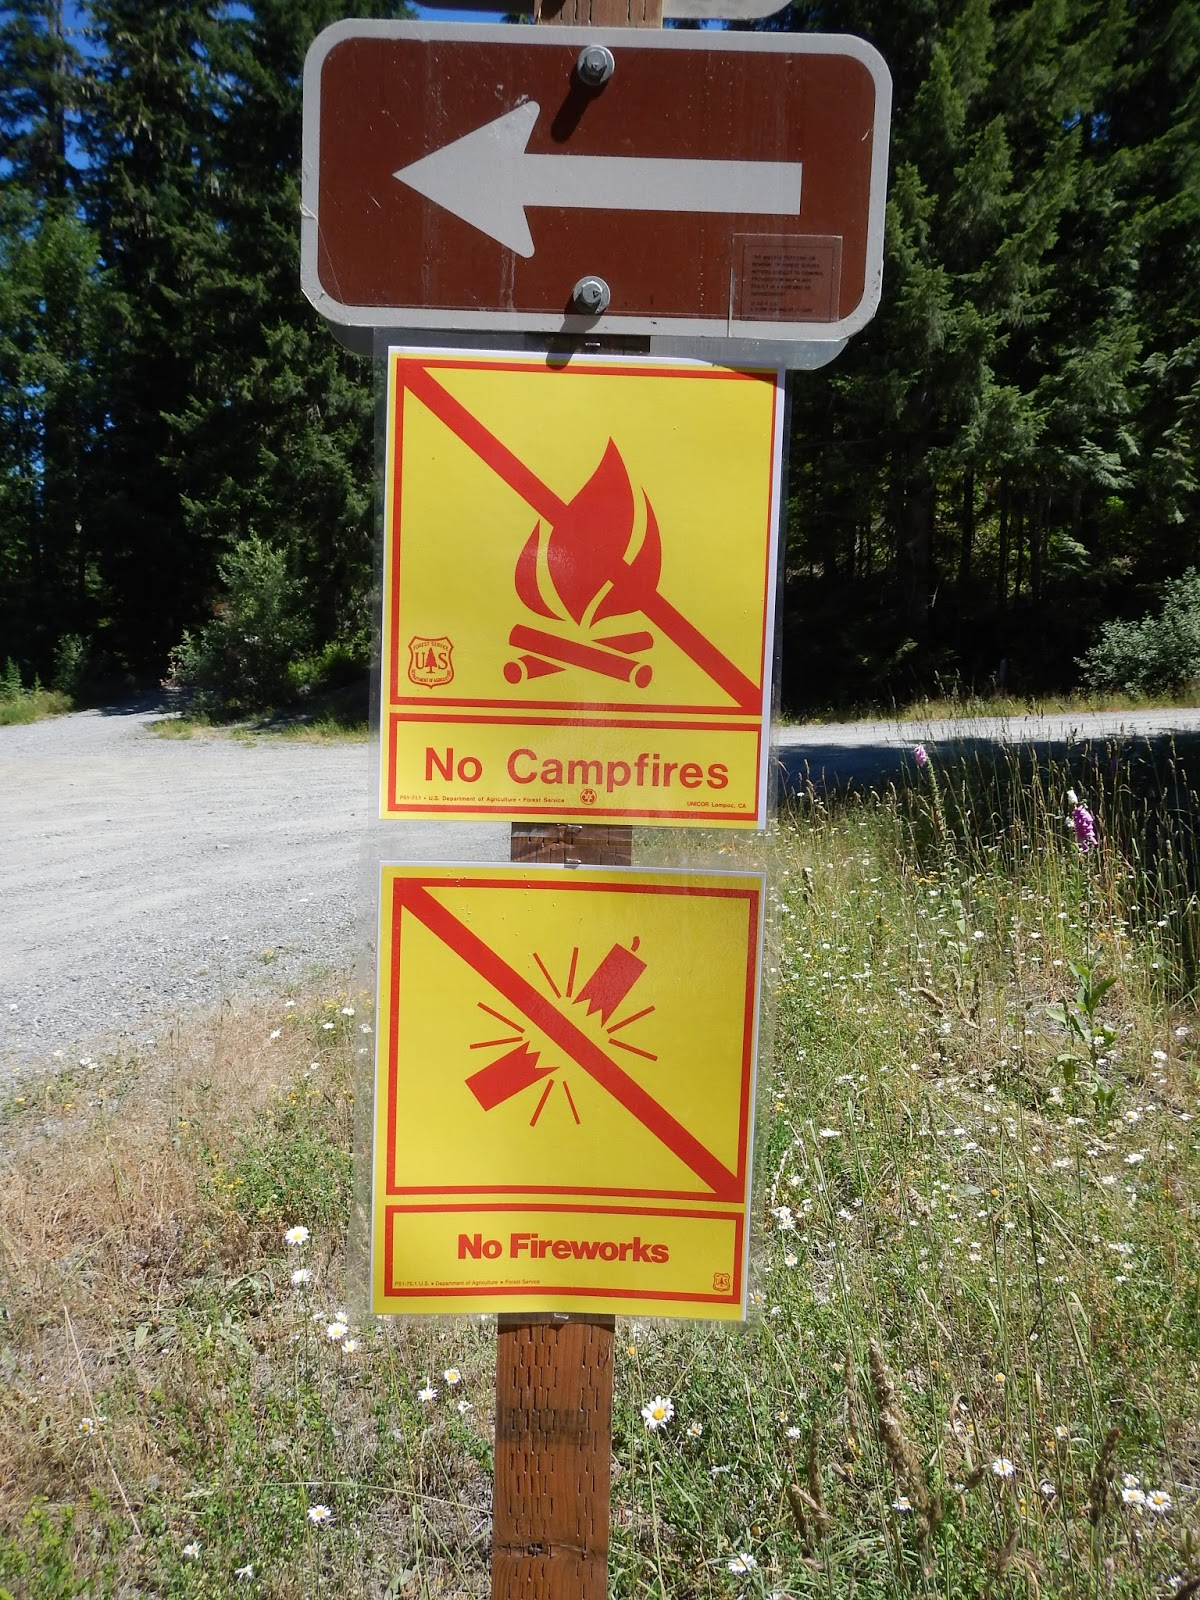 bc292e9e5 If you are found with fireworks up at Scenic then you carried them across  National Forest lands. That is a ...